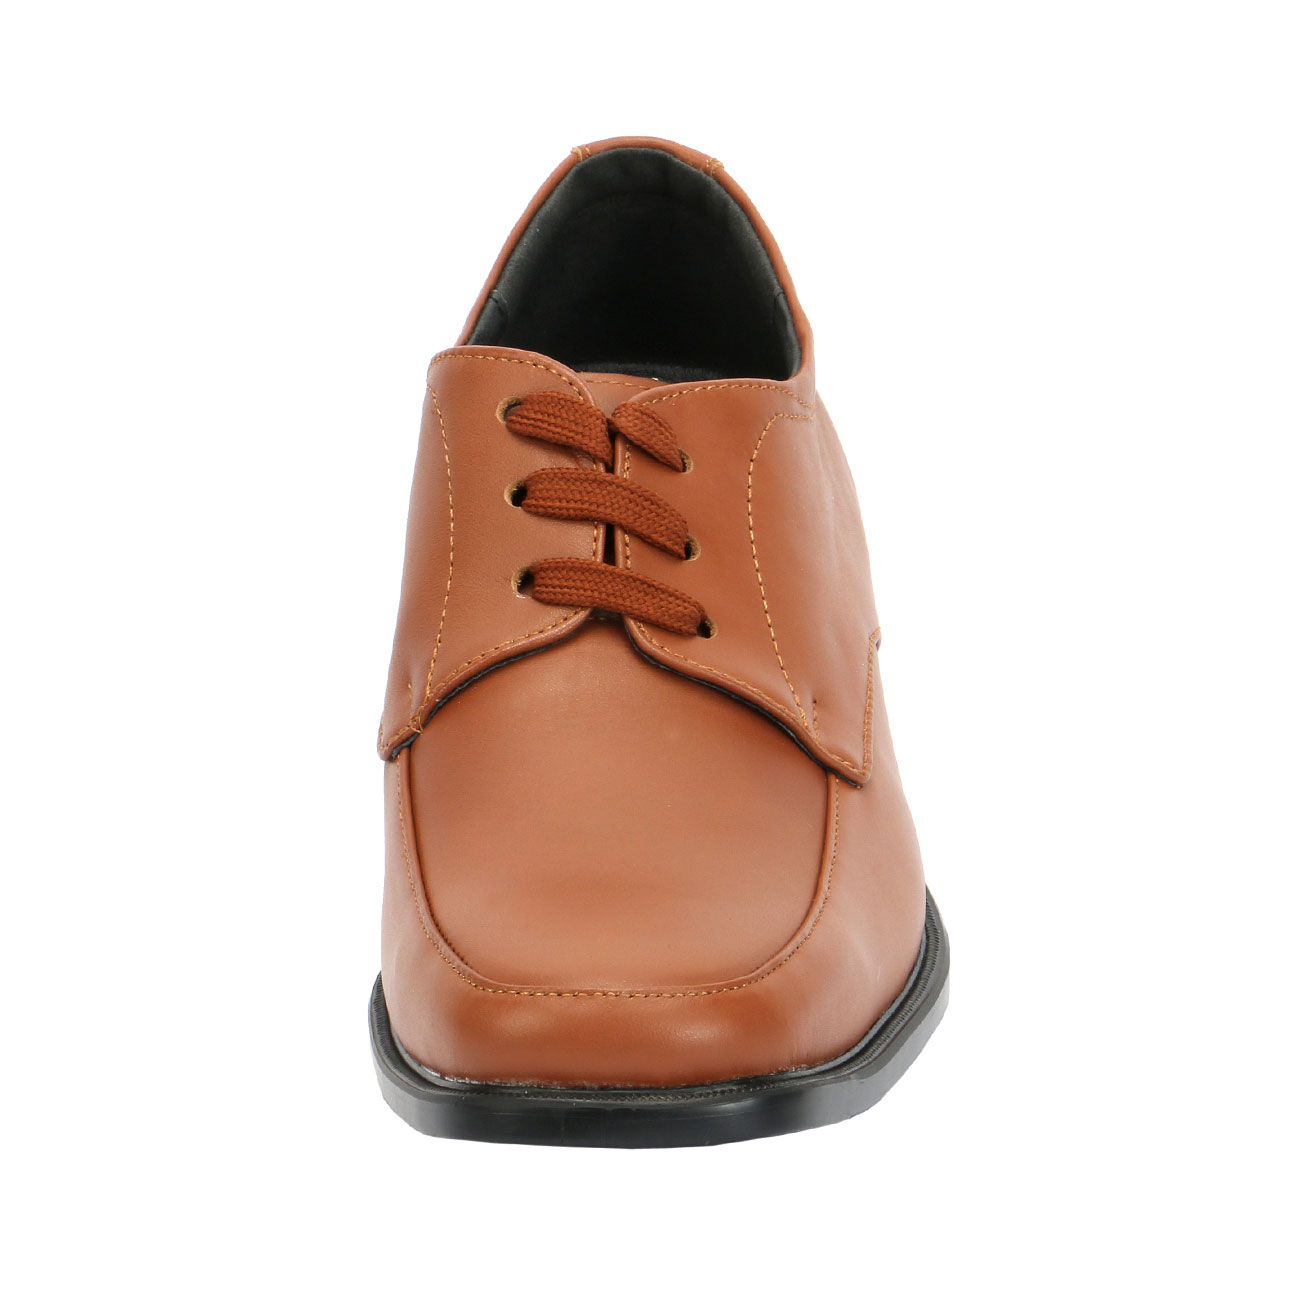 Guys shoes for increasing height-2